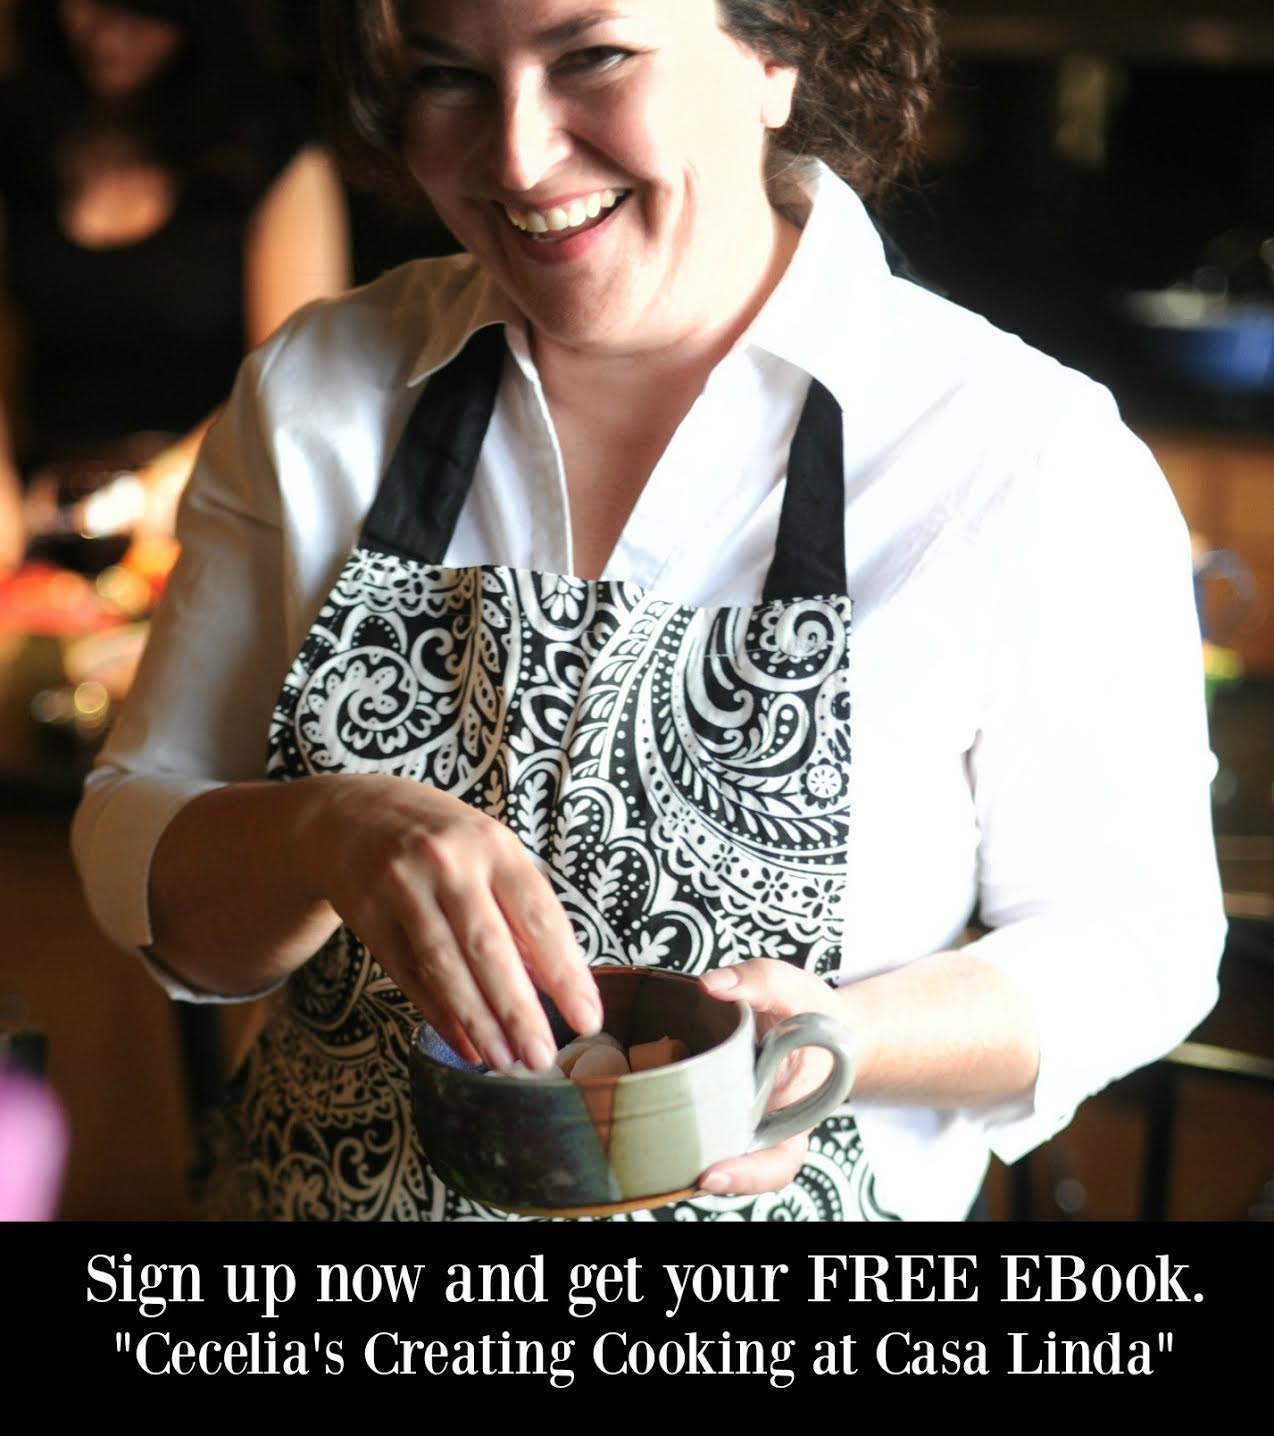 Cecelia's Good Stuff - FREE Ebook